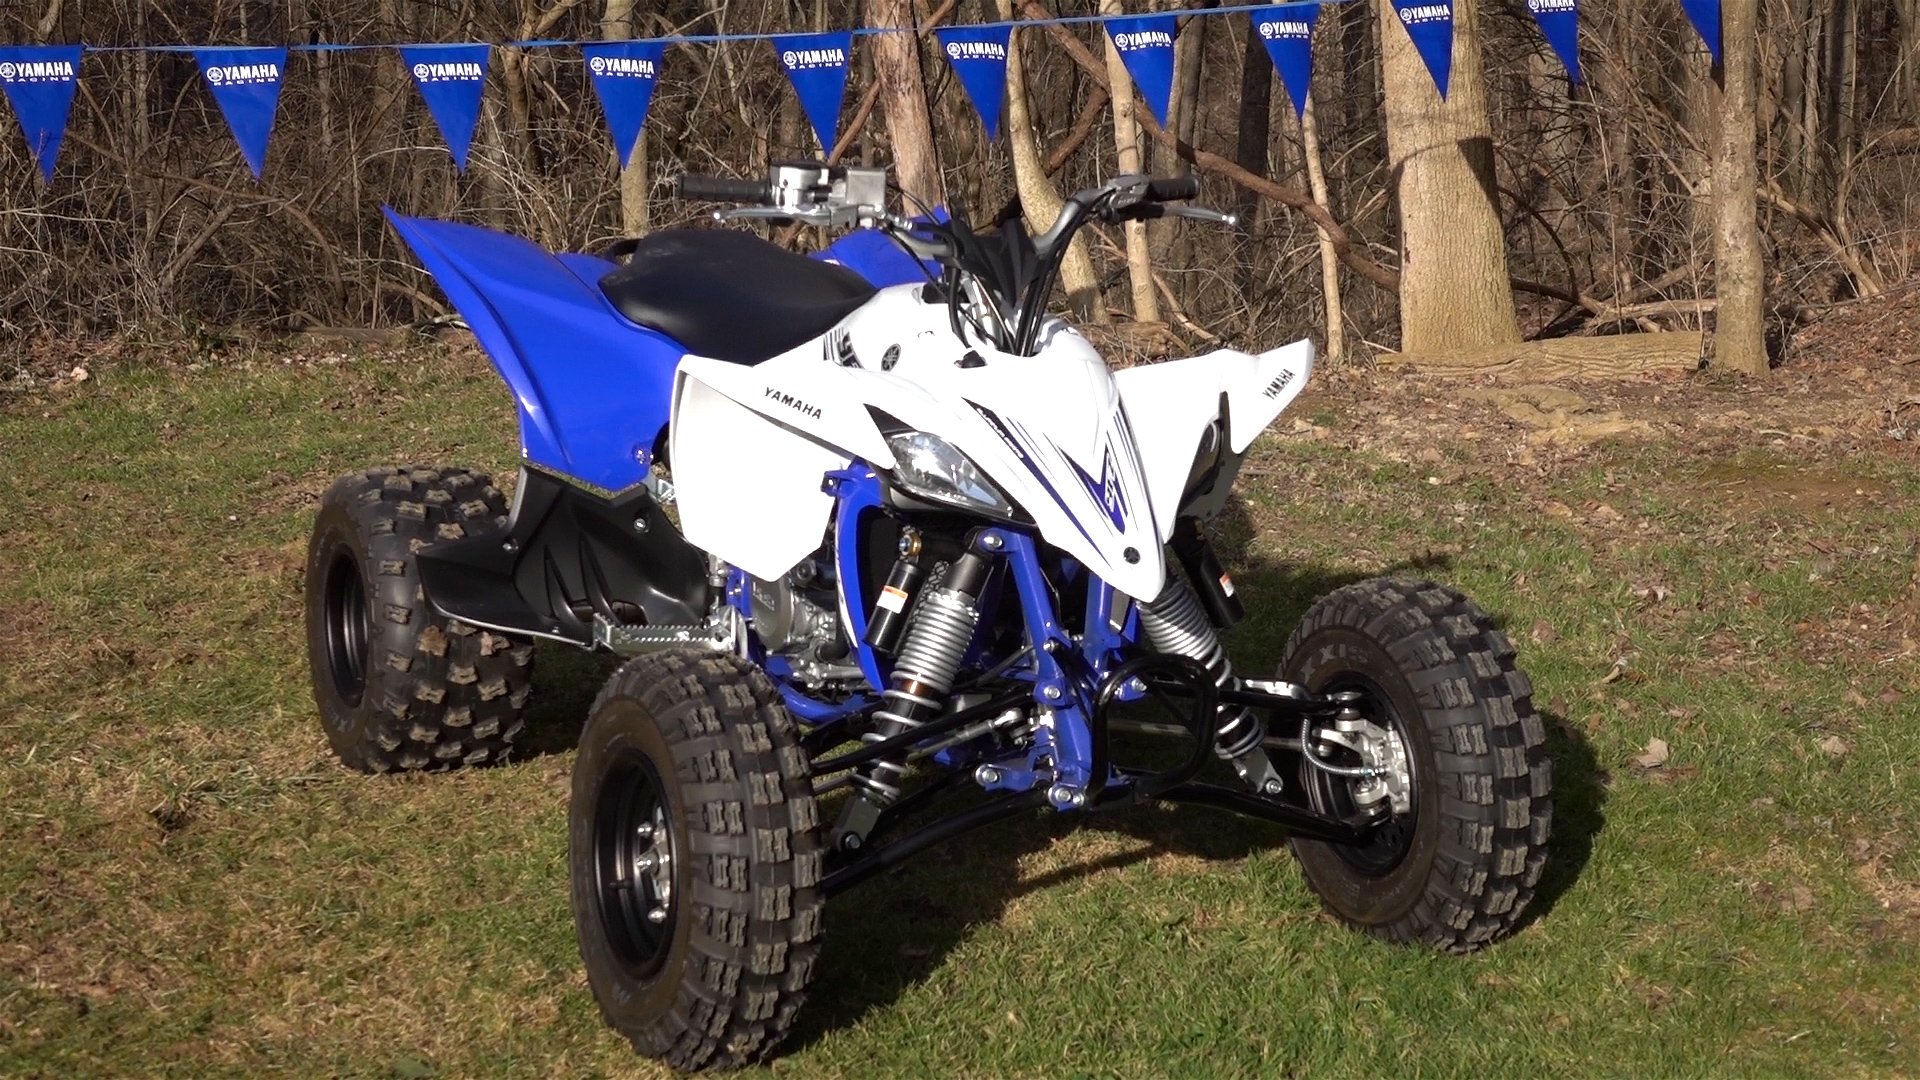 2016 yamaha yfz450r track and trail test with video. Black Bedroom Furniture Sets. Home Design Ideas